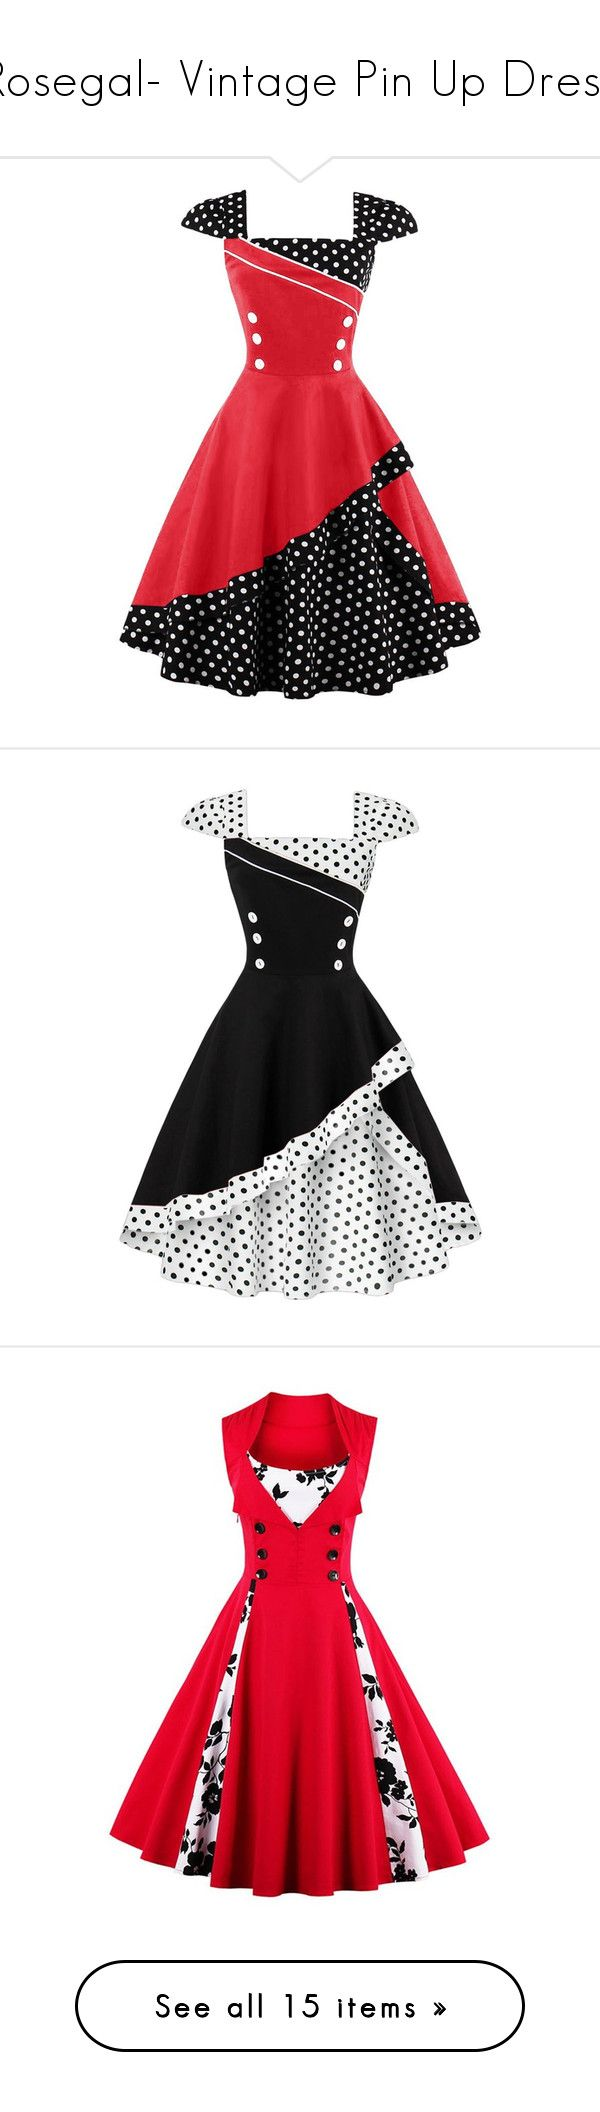 """Rosegal- Vintage Pin Up Dress"" by fshionme ❤ liked on Polyvore featuring dresses, red polka dot corset, spotted dress, red dot dress, polka dot print dress, vintage corset dresses, vintage day dress, corsette dress, dot dresses and vintage fit and flare dresses"